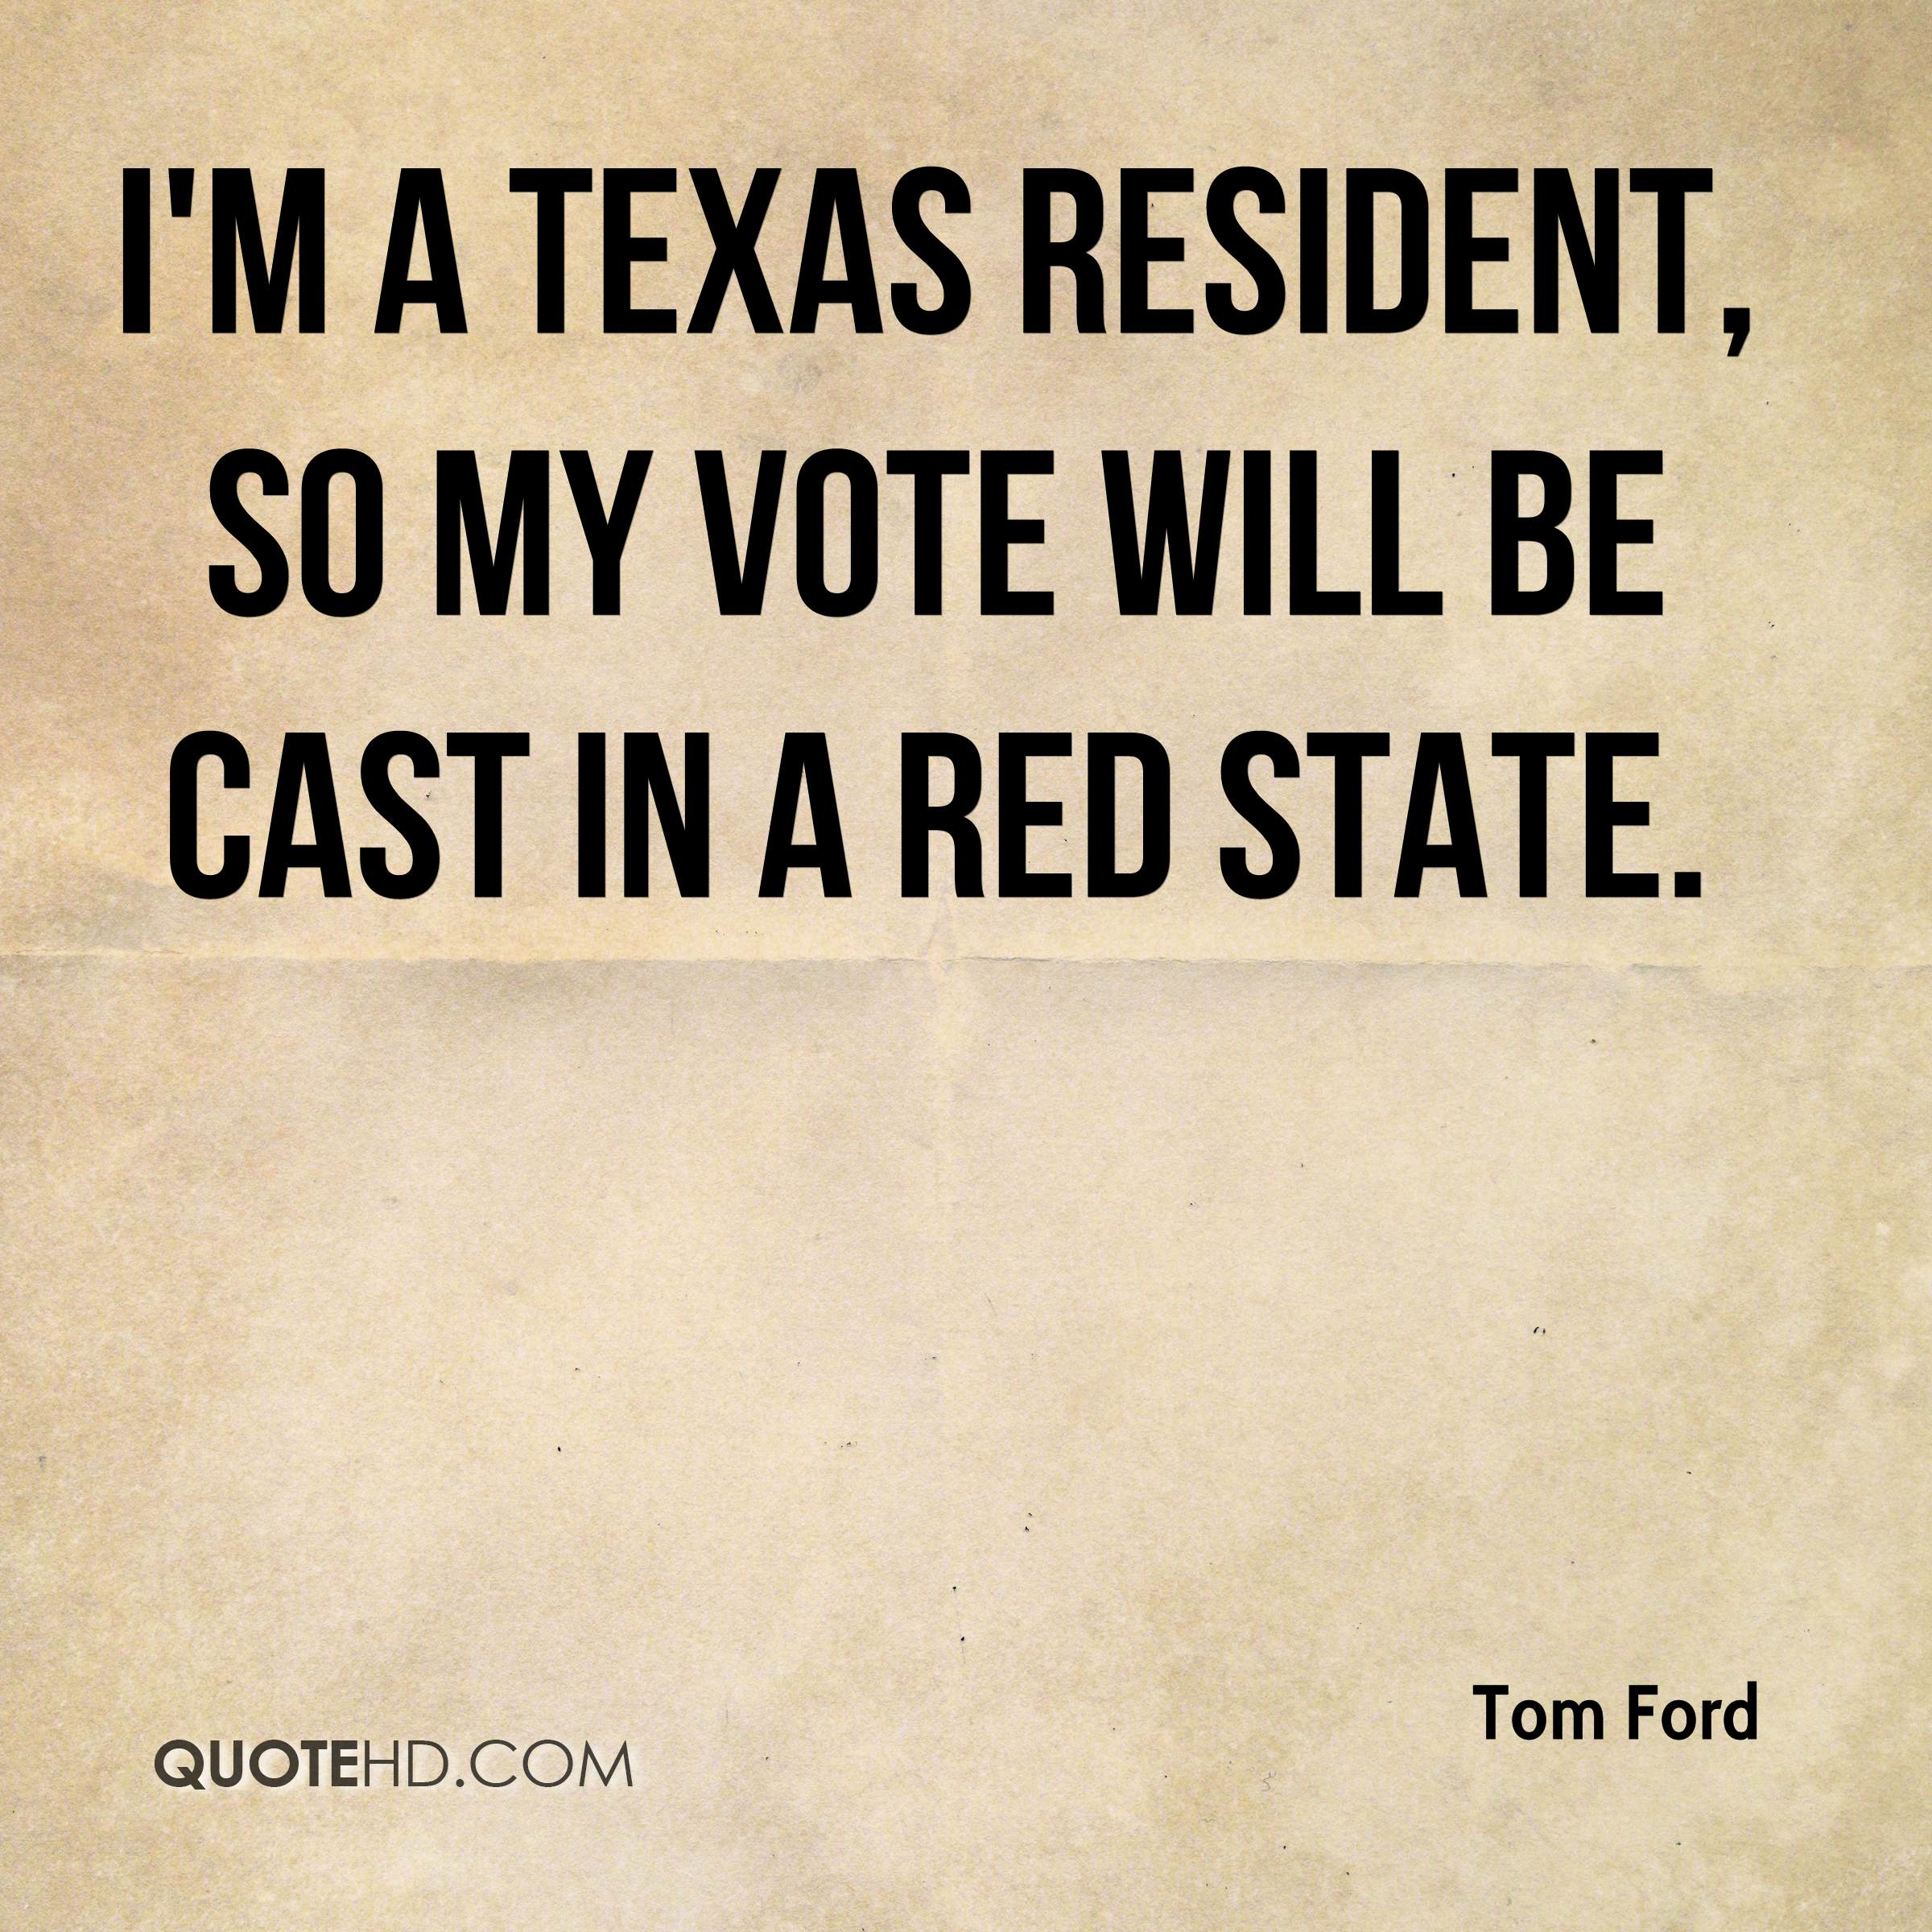 I'm a Texas resident, so my vote will be cast in a red state.